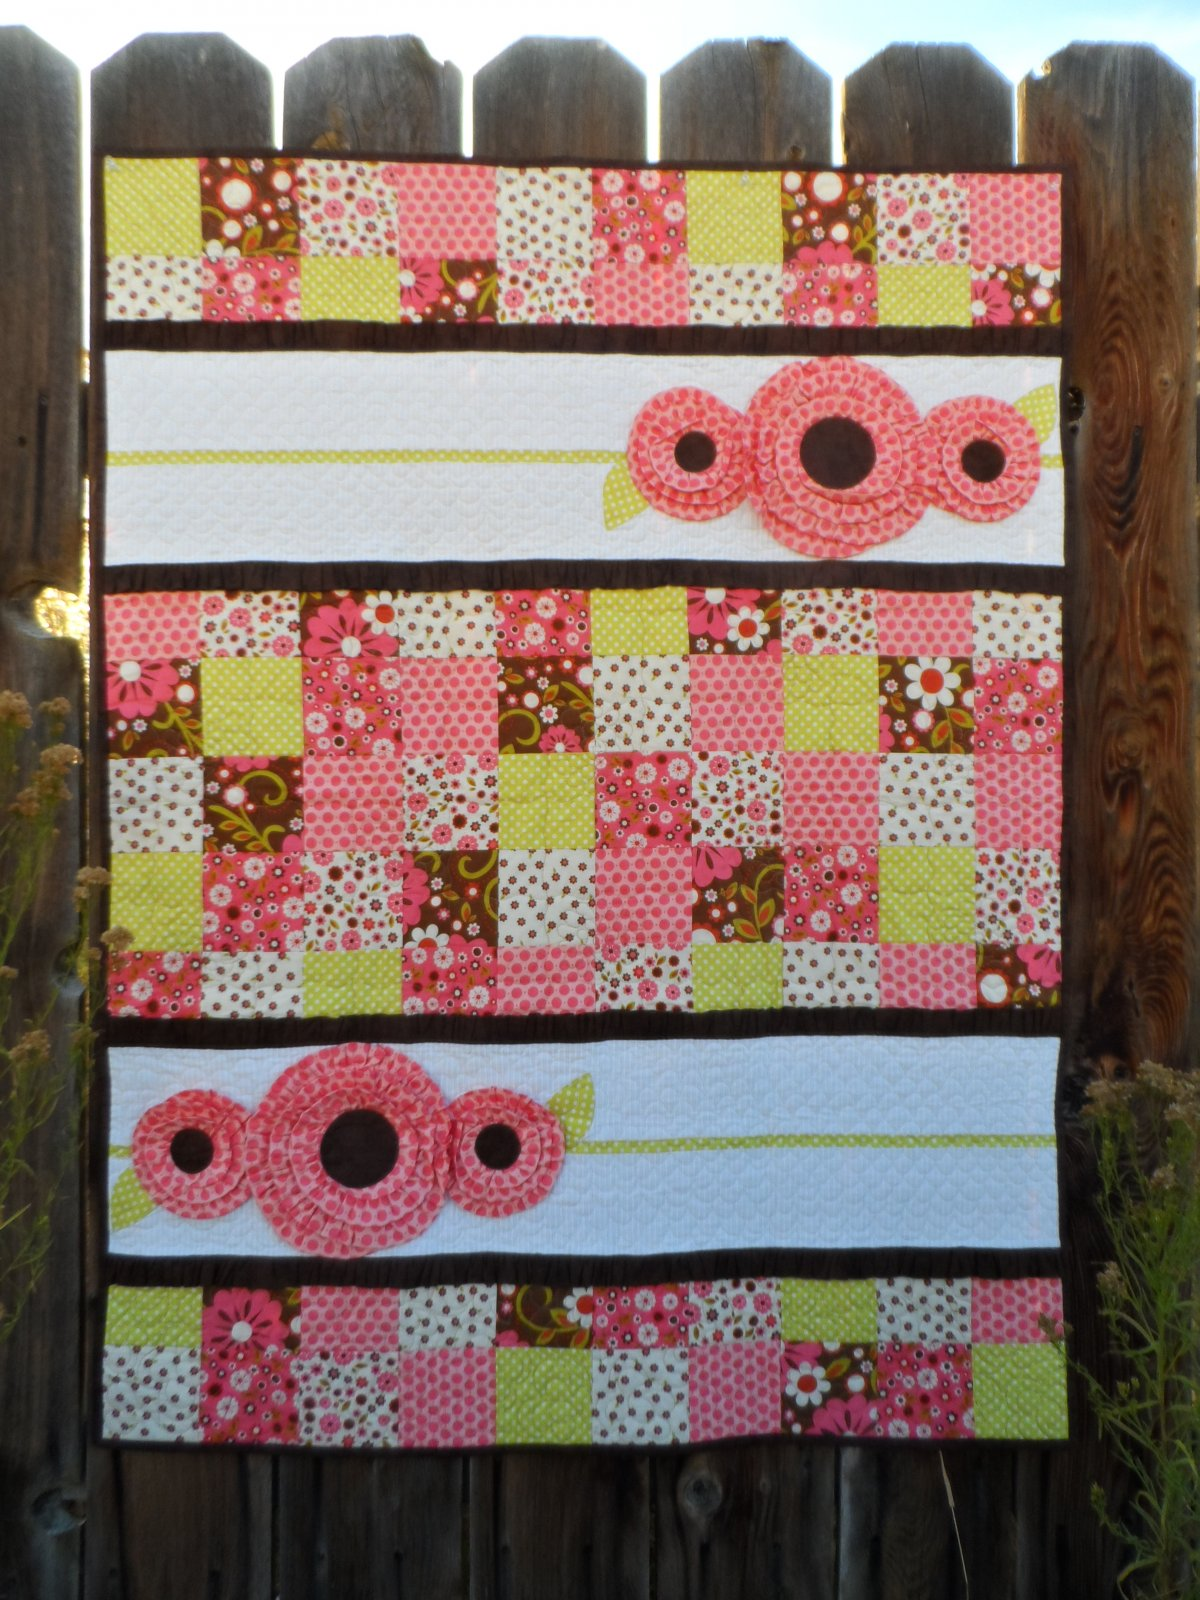 Pocket Full of Posies Quilt Kit